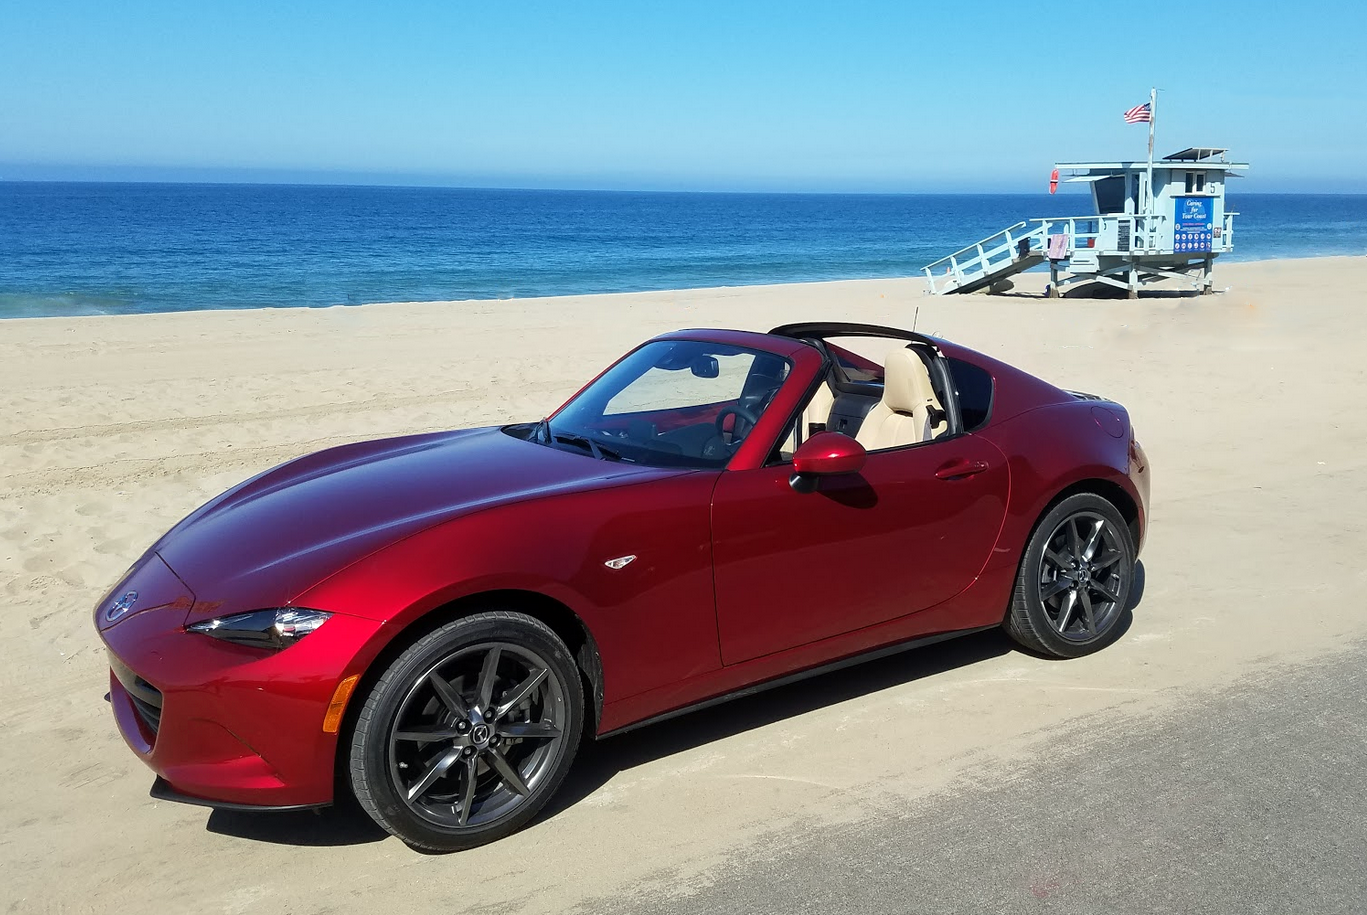 2017 Mazda Mx 5 Miata Rf Grand Touring >> First Spin: 2019 Mazda MX-5 Miata | The Daily Drive ...